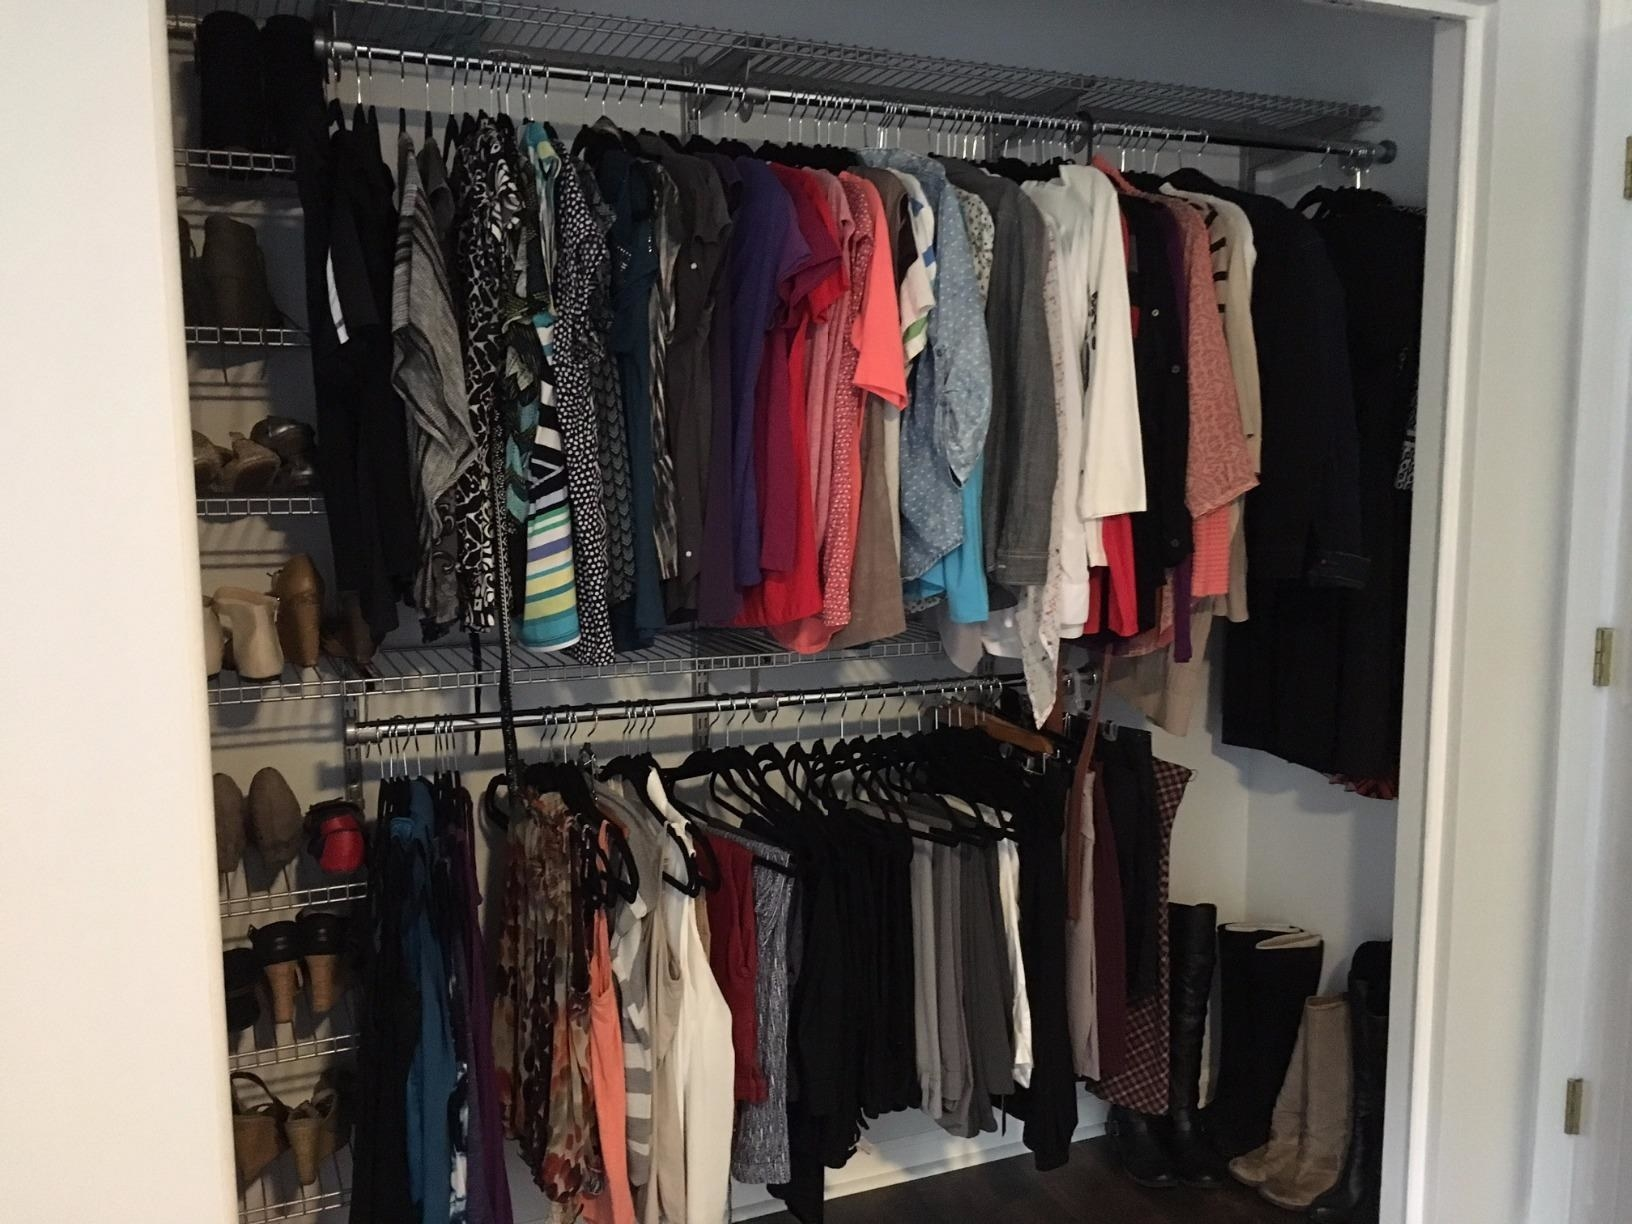 reviewer pic of the system in their closet with all their clothes and shoes organized